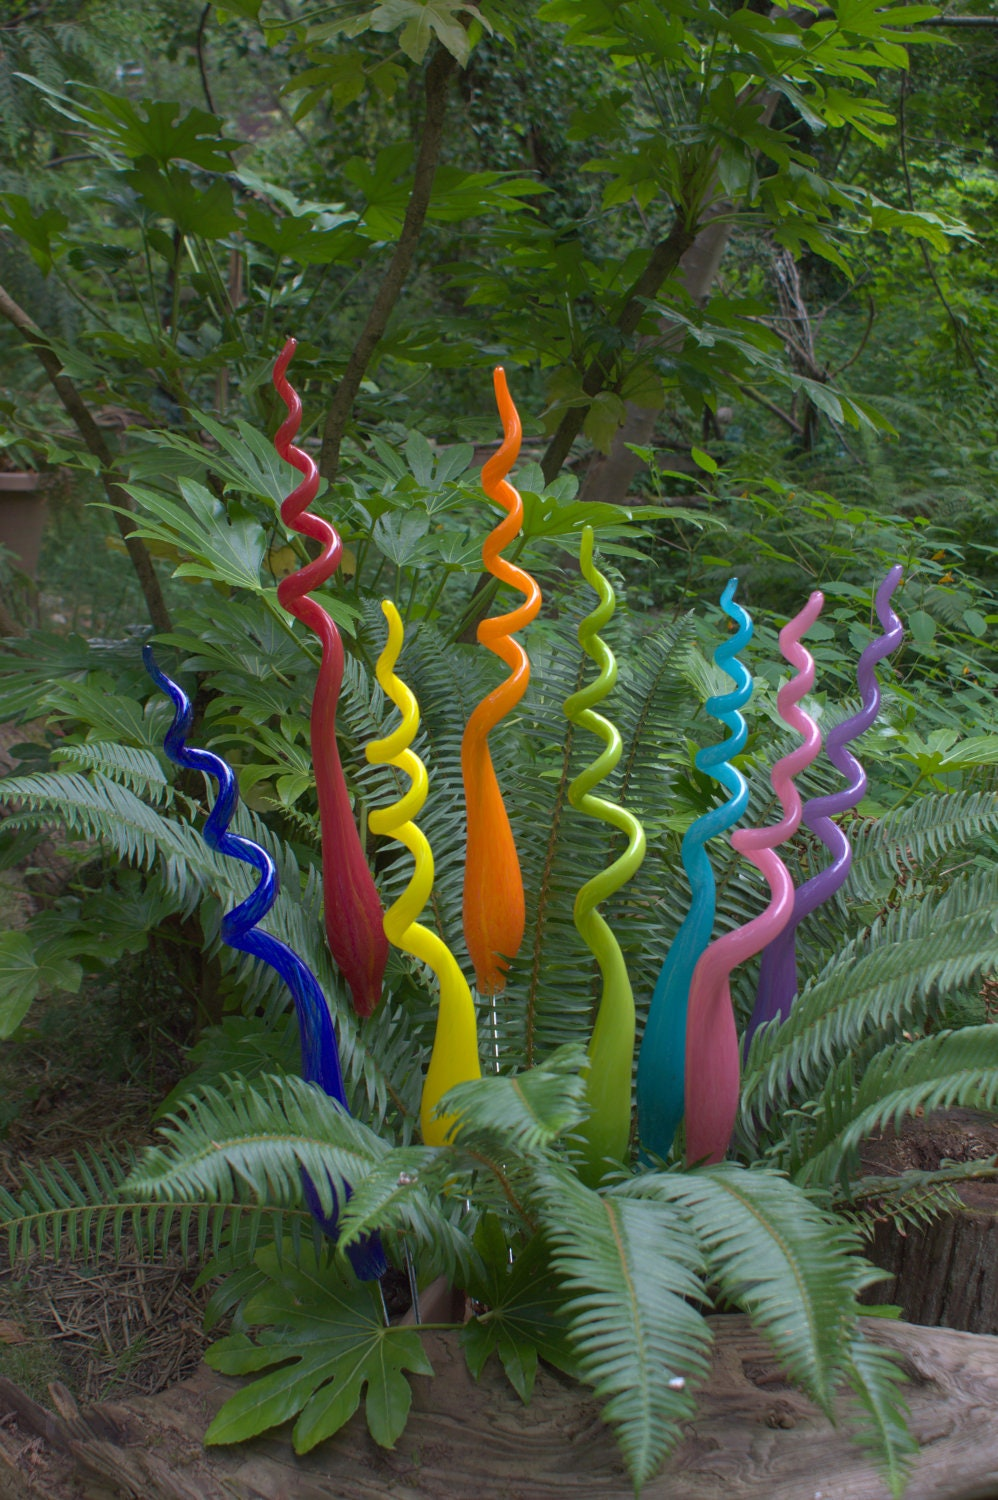 One Hand Blown Glass Garden Art Plant Stake 24 inches tall